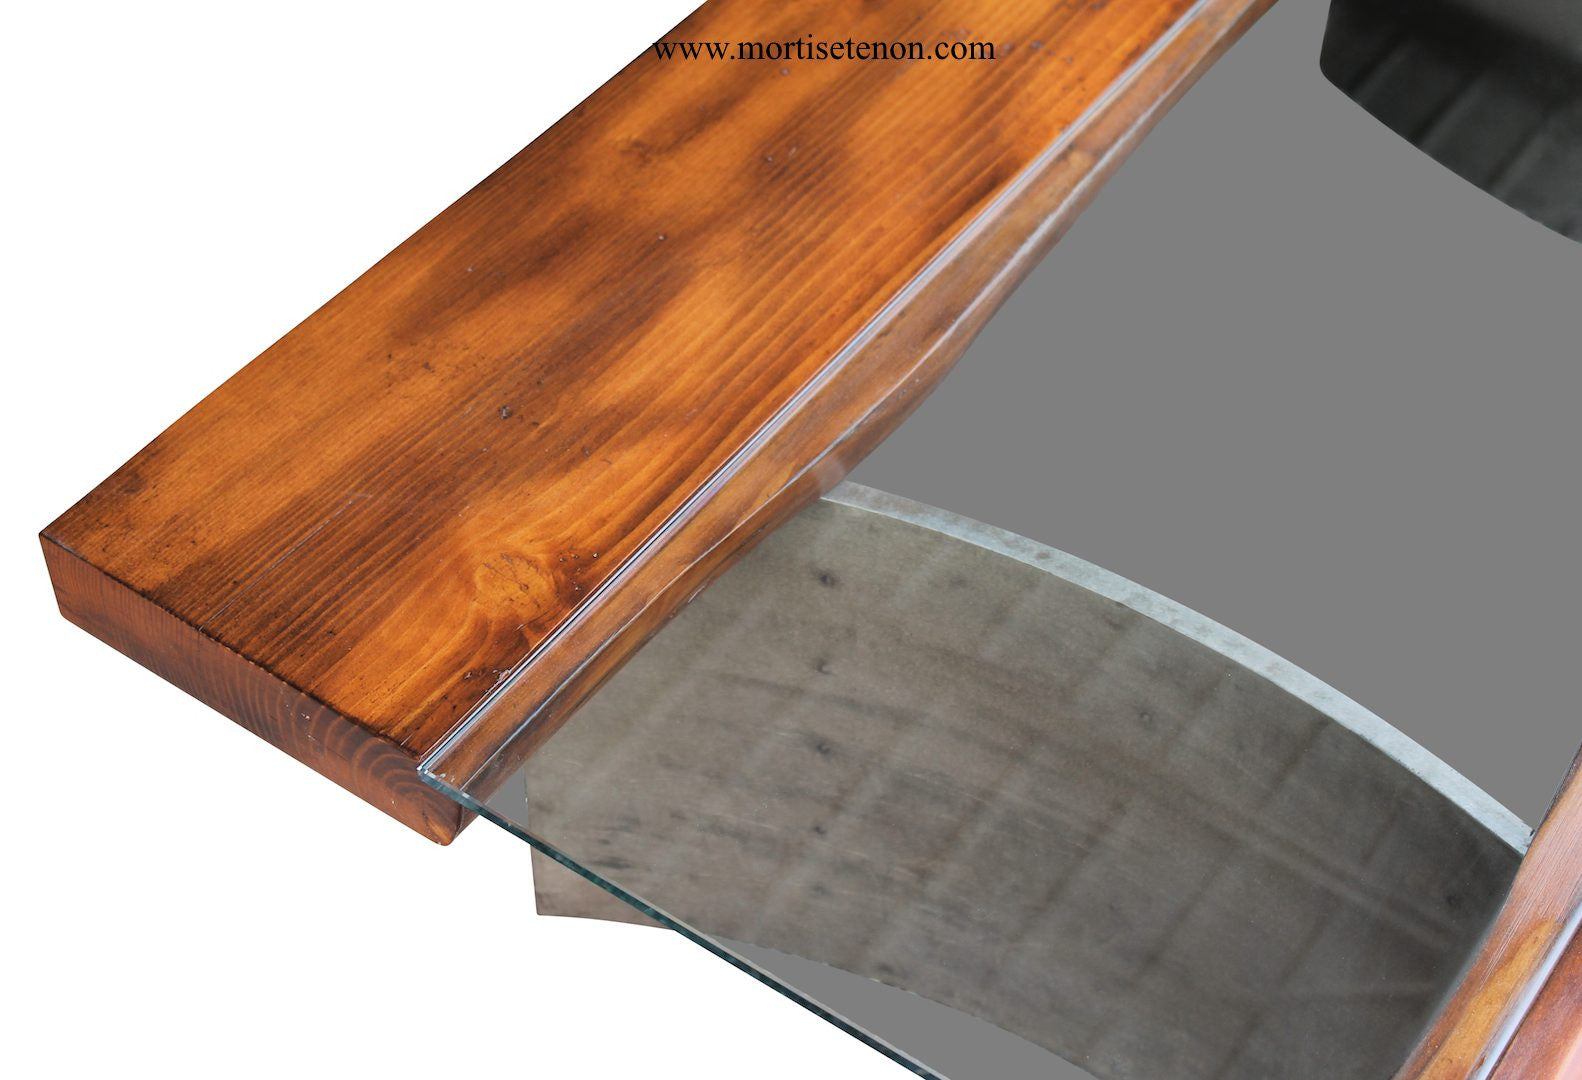 Reclaimed wood free edge coffee table with industrial for Where to find reclaimed wood for free